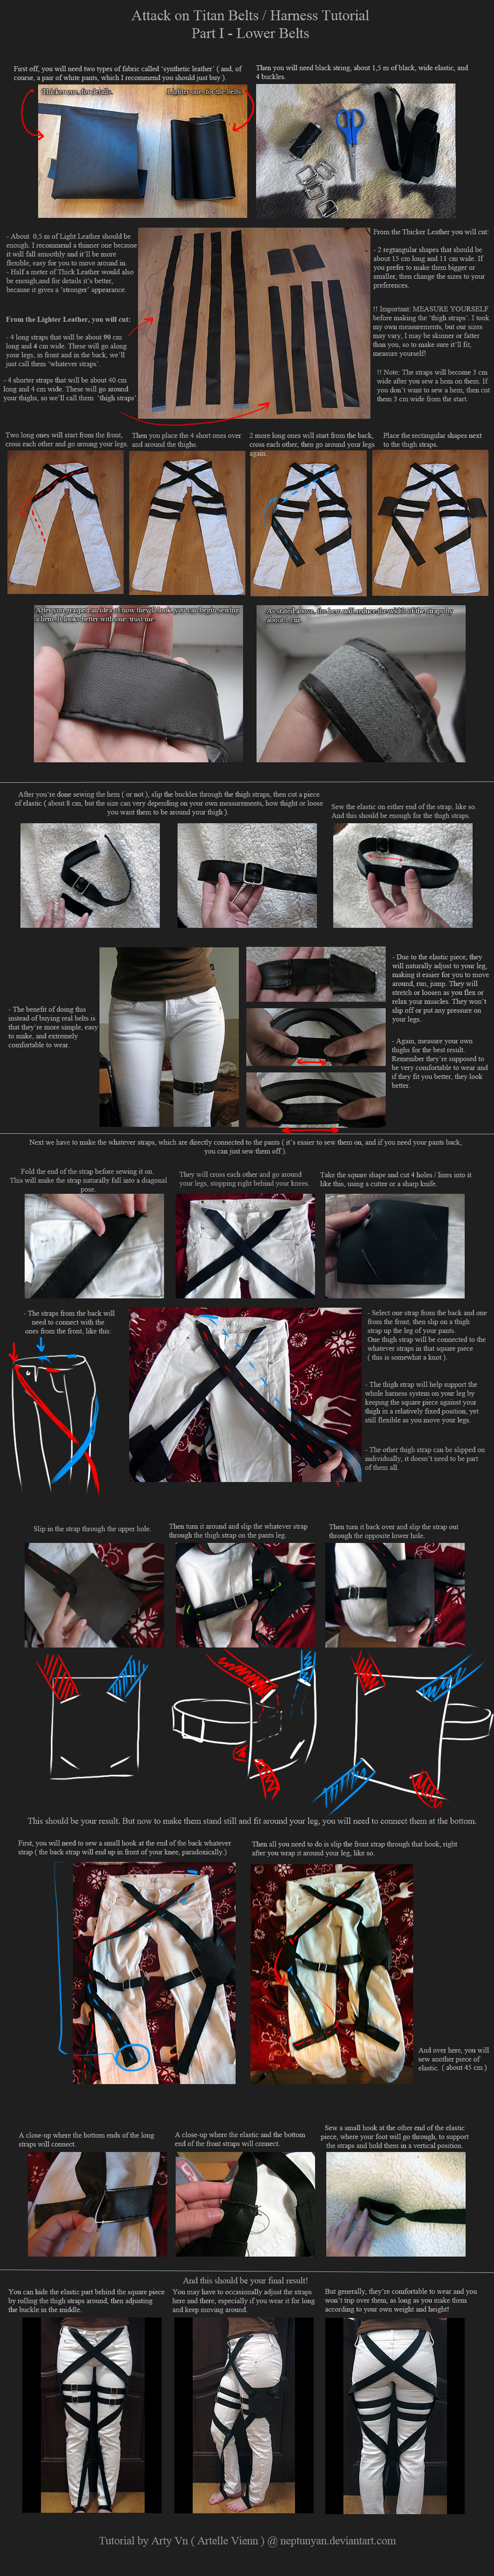 Attack on Titan Belts / Harness Tutorial - Part 1 by neptunyan on deviantART>>> ah was looking for this